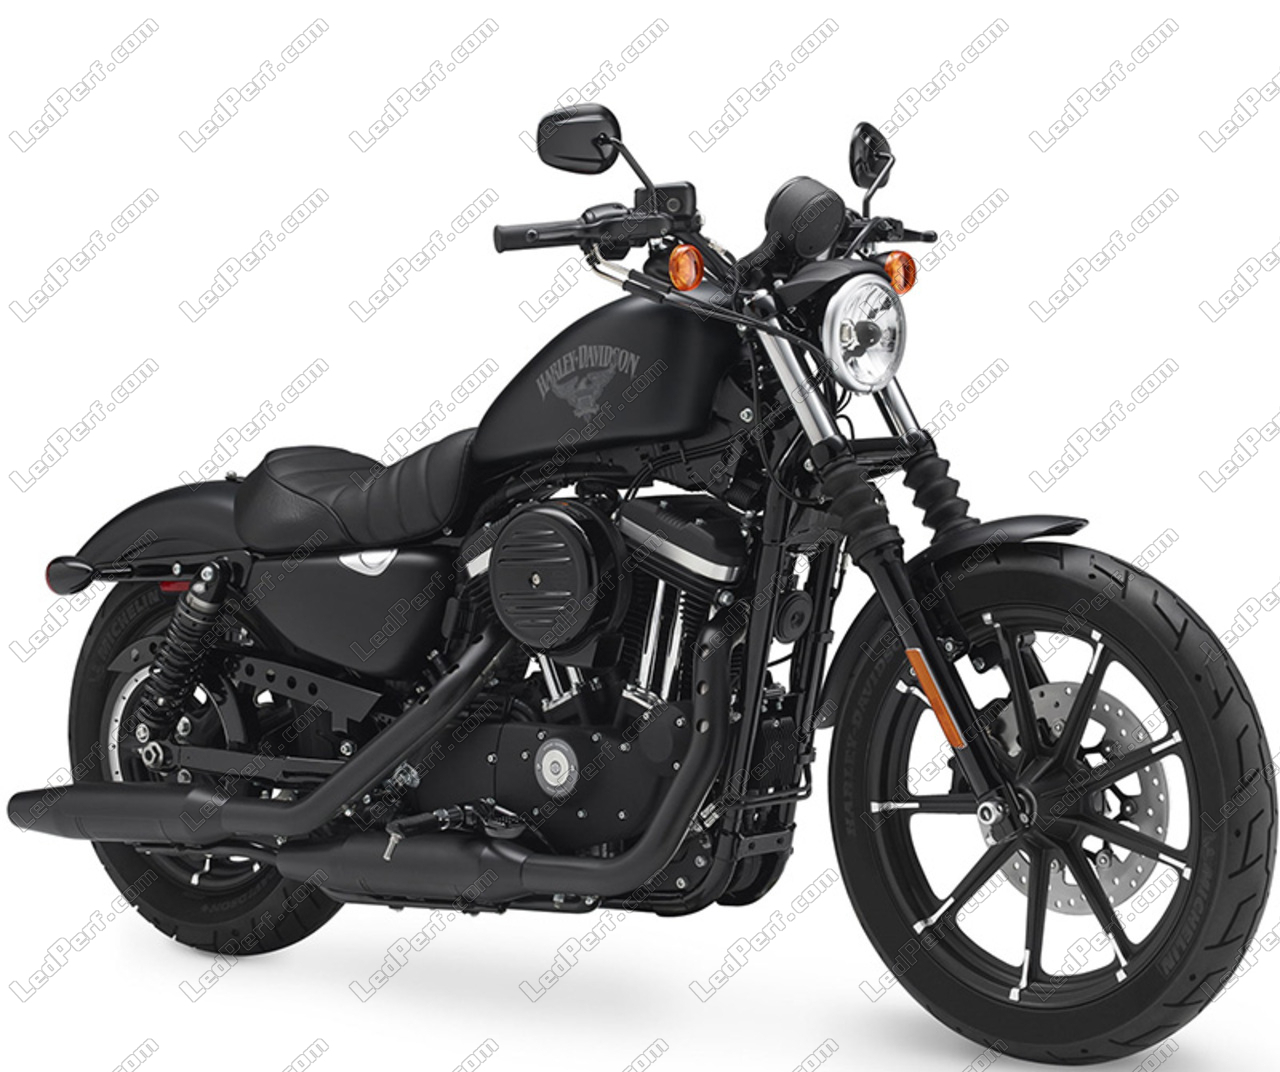 phare led rond pour harley davidson iron 883 garantie 5 ans. Black Bedroom Furniture Sets. Home Design Ideas